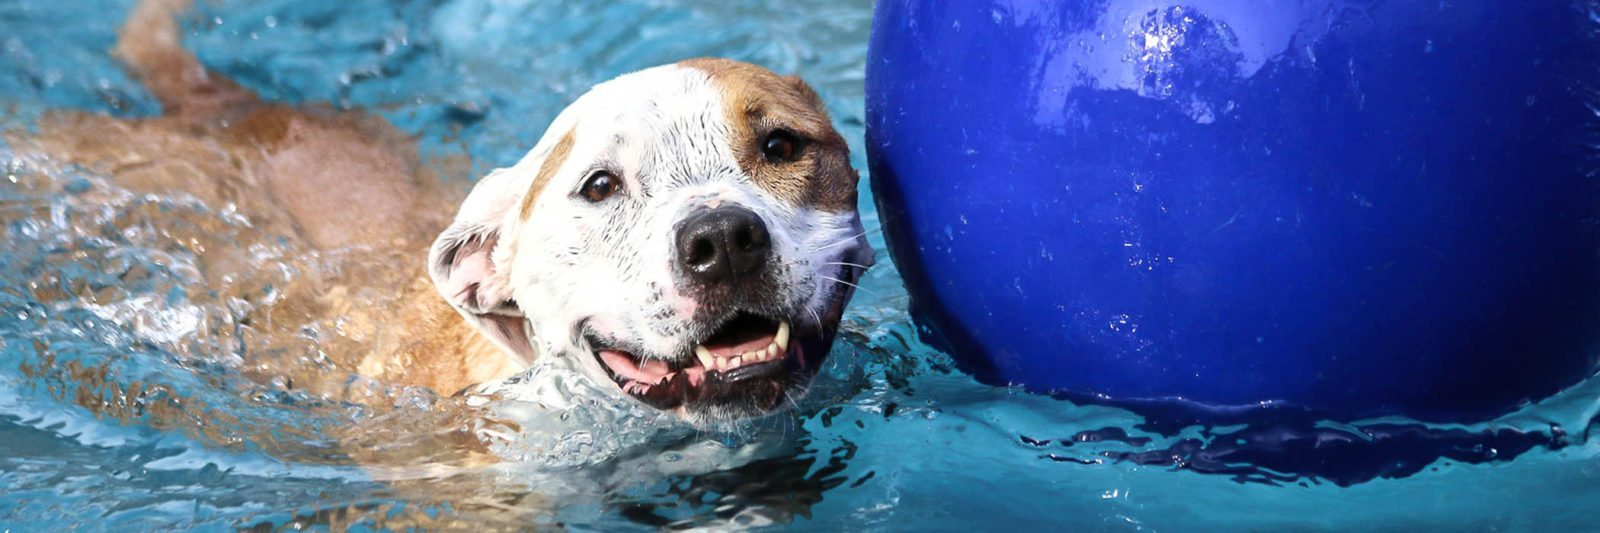 Nearest doggy daycare Atascocita Texas